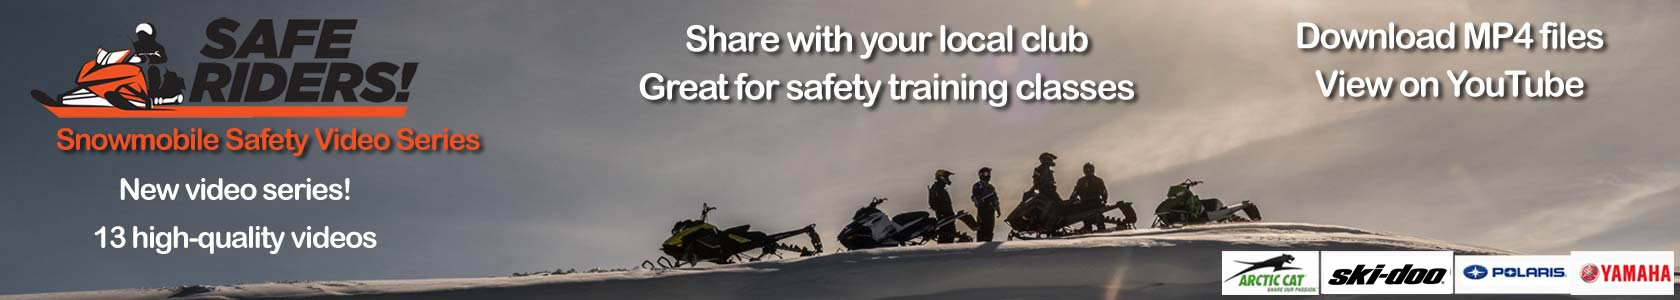 Safe Riders Snowmobiling Video Series